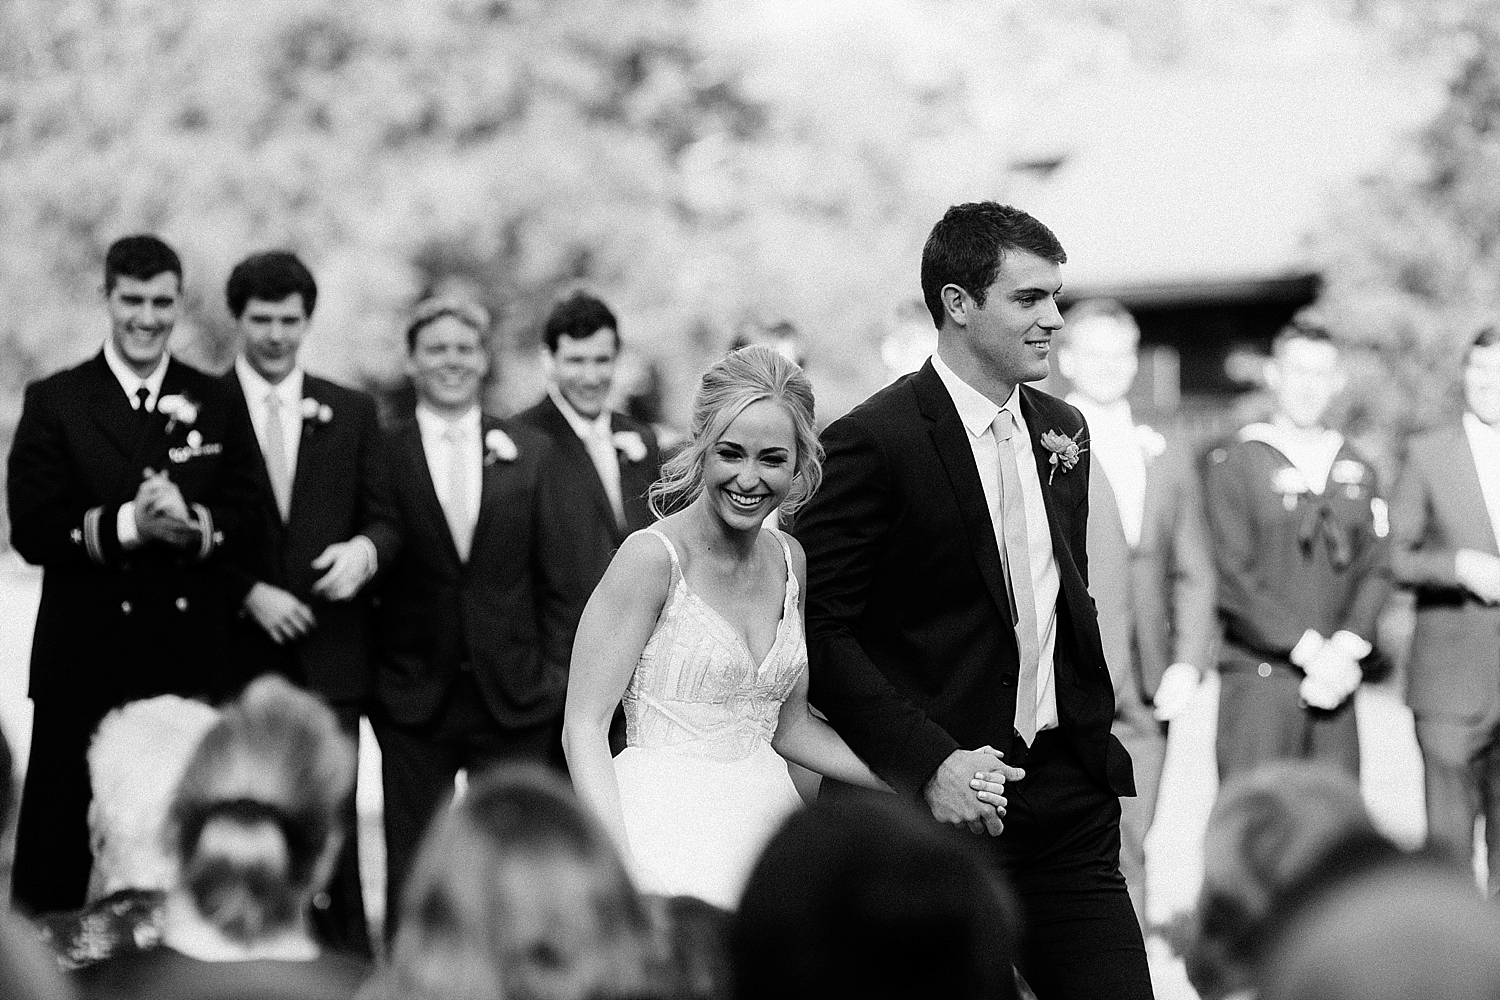 bride smiling at guests while walking down the aisle with groom